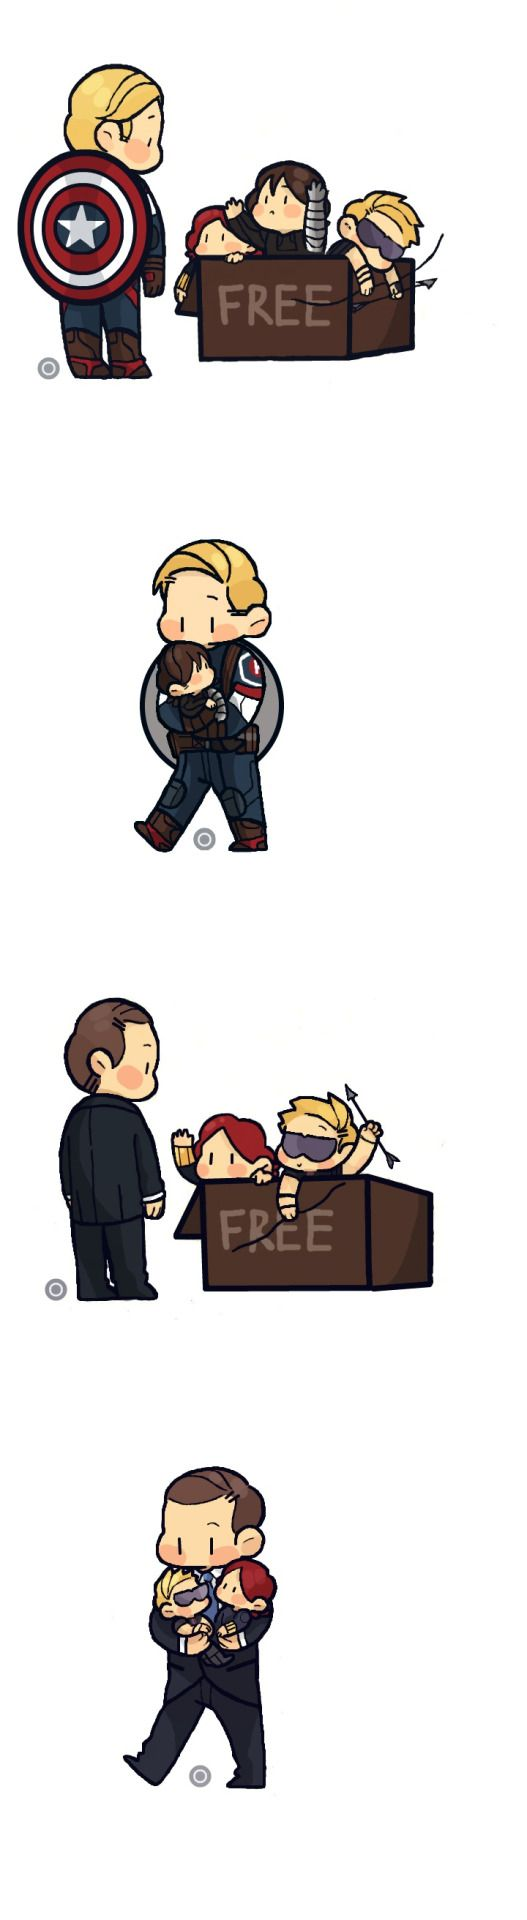 IM GONNA CRY THIS IS THE CUTEST SHIT EVER!!!!! STEVE'S HAIR AND LITTLE BUCKY AND NAT AND CLINT AND COULSON AND THE WAY HE LOOKS AT THEM!!!!!!! THIS IS SIMPLY TO MUCH I CANT TAKE IT!!!!❤️❤️❤️❤️❤️❤️❤️❤️❤️❤️❤️❤️❤️❤️❤️❤️❤️❤️❤️❤️❤️❤️❤️❤️❤️❤️❤️❤️❤️❤️❤️❤️❤️❤️❤️❤️❤️❤️❤️❤️❤️❤️❤️❤️❤️❤️❤️❤️❤️❤️❤️❤️❤️❤️❤️❤️❤️❤️❤️❤️